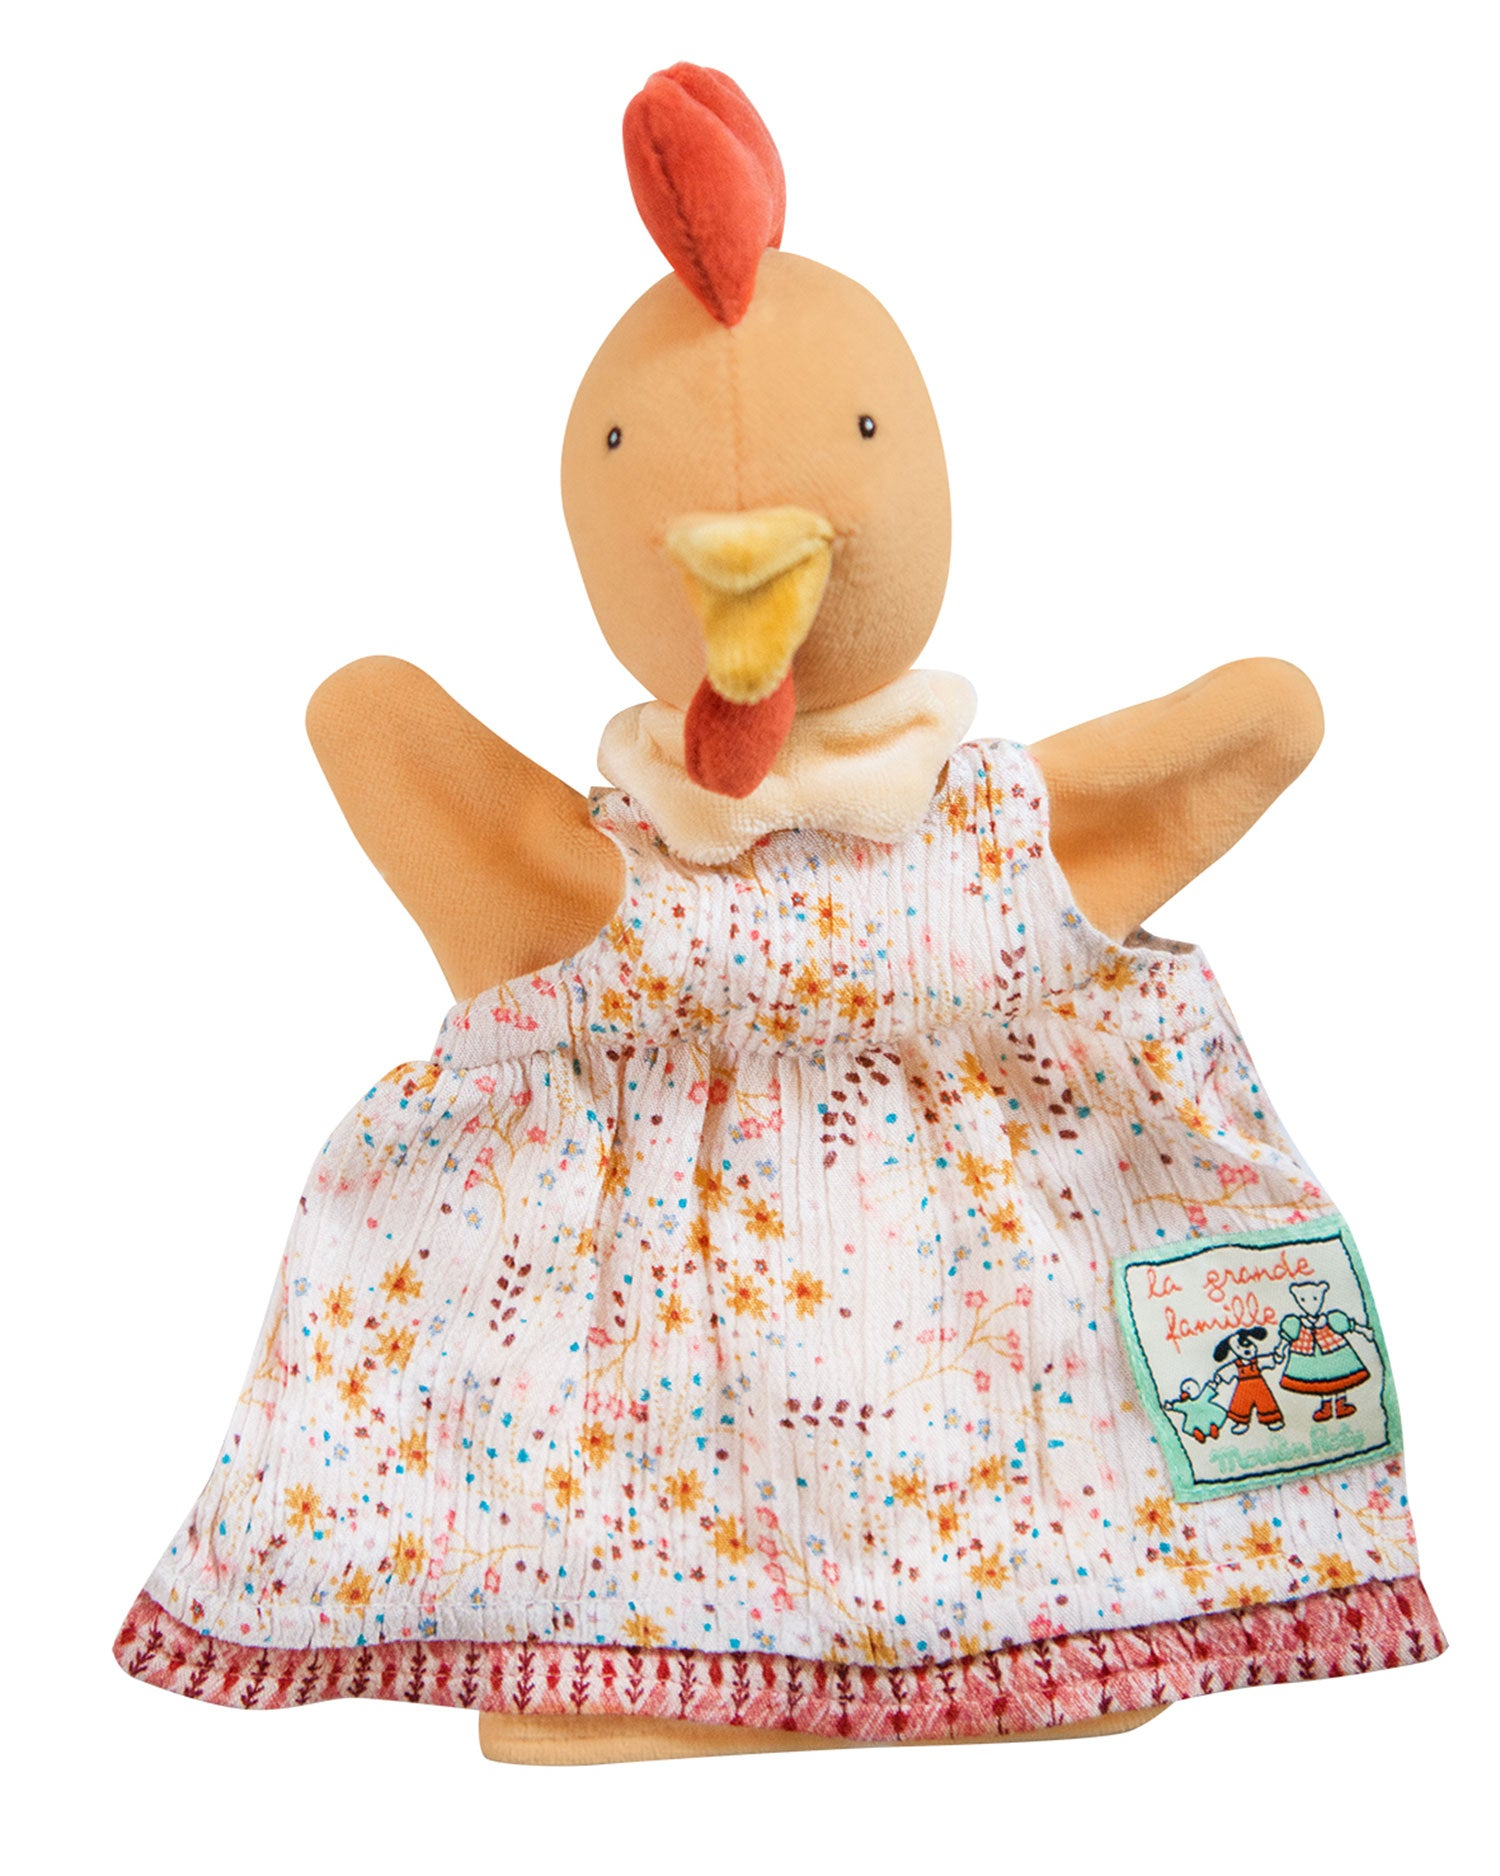 Félicie the hen, a hand puppet, from Moulin Roty's iconic La Grande Famille collection of cheerful characters is a great gift idea for new born to toddlers and pre-schoolers. She is dressed with a floral dress and will ensure fun plays! Ideal soft toy for developing any child's imagination.